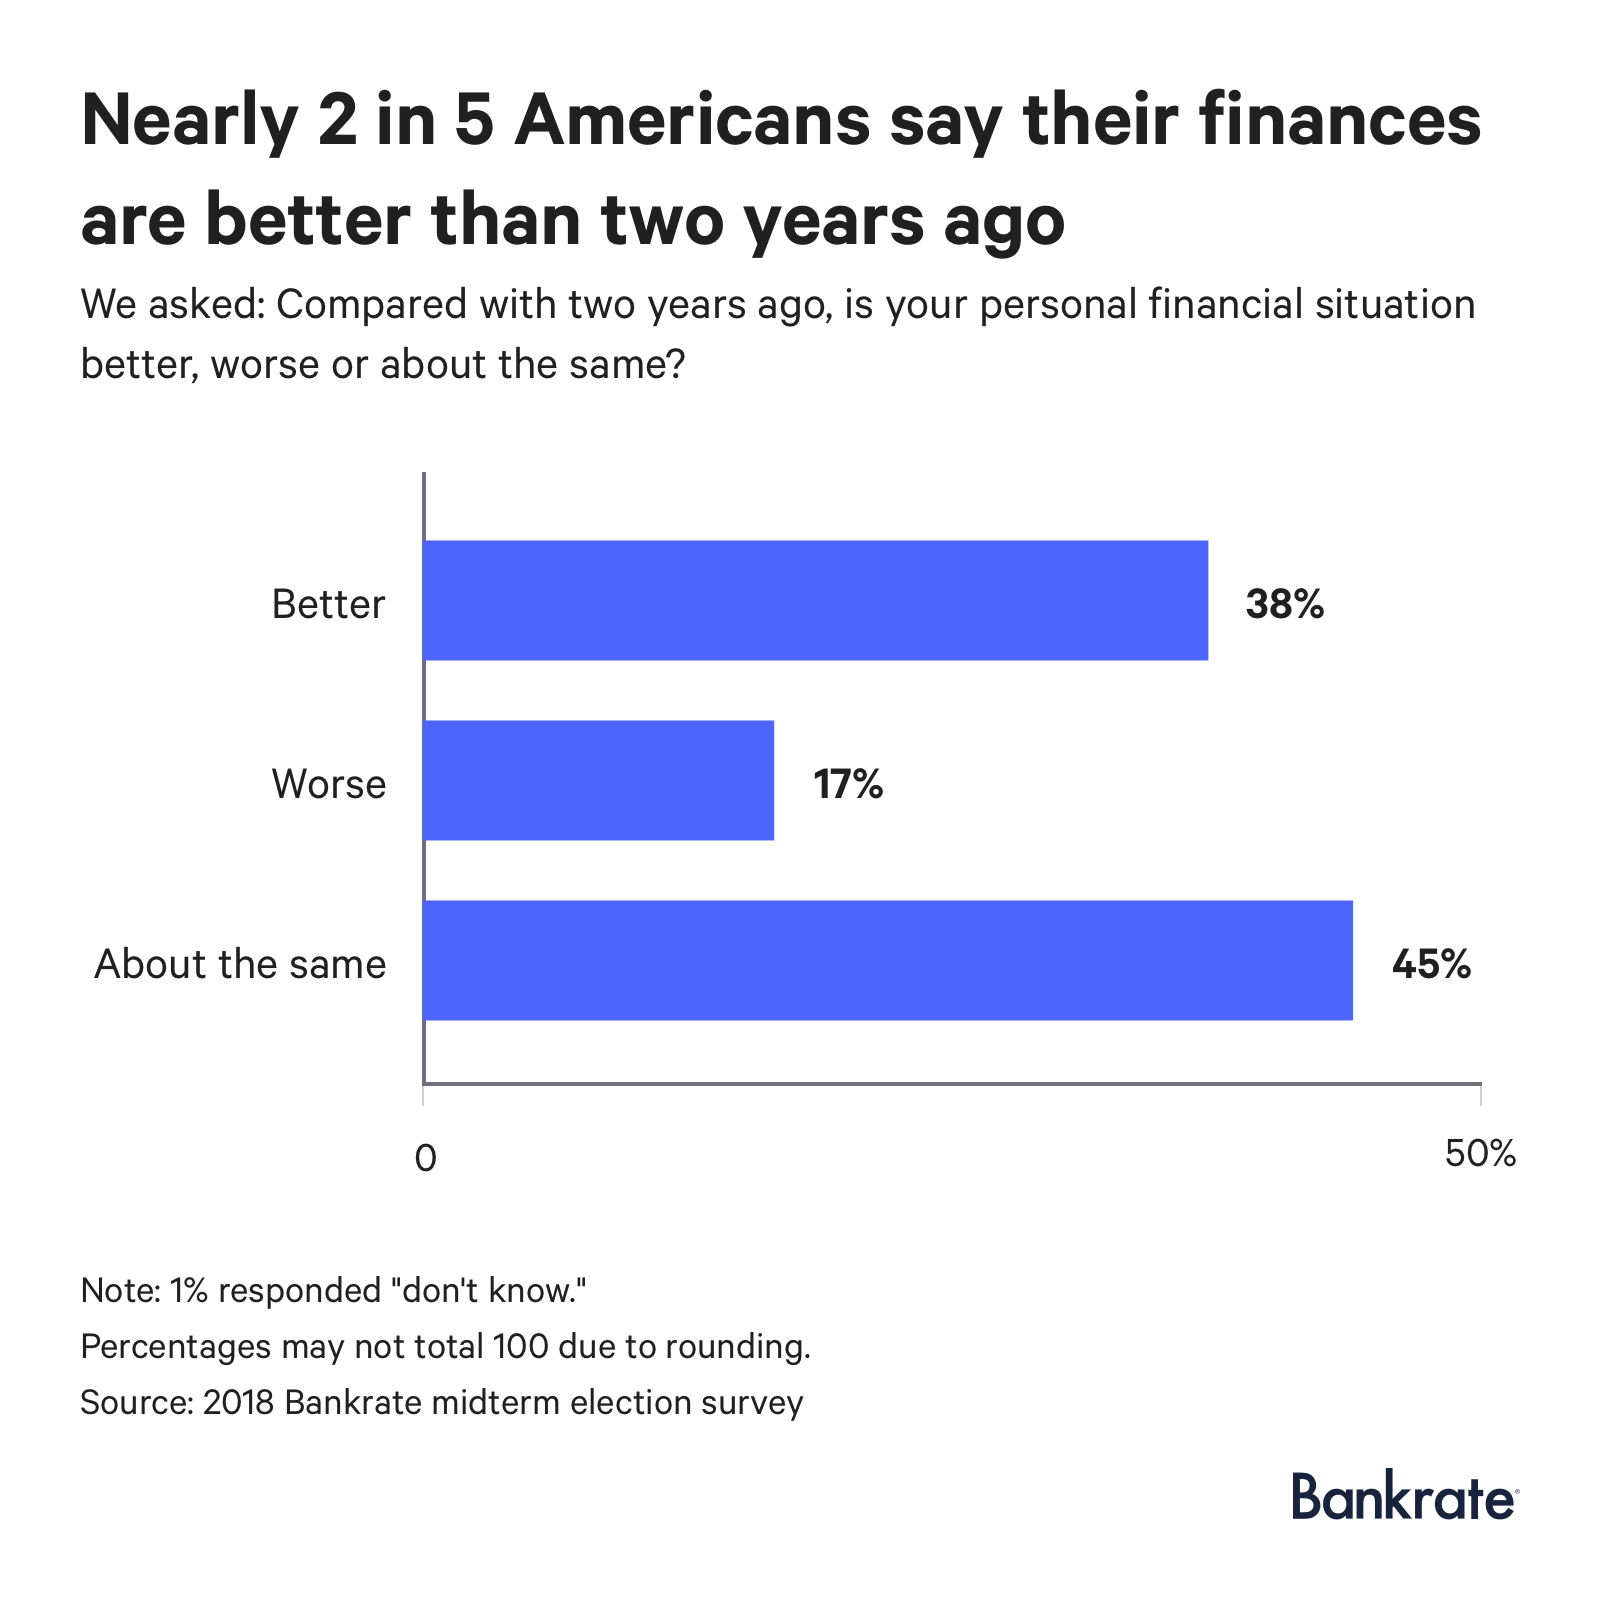 38% claim that their personal financial situation is better